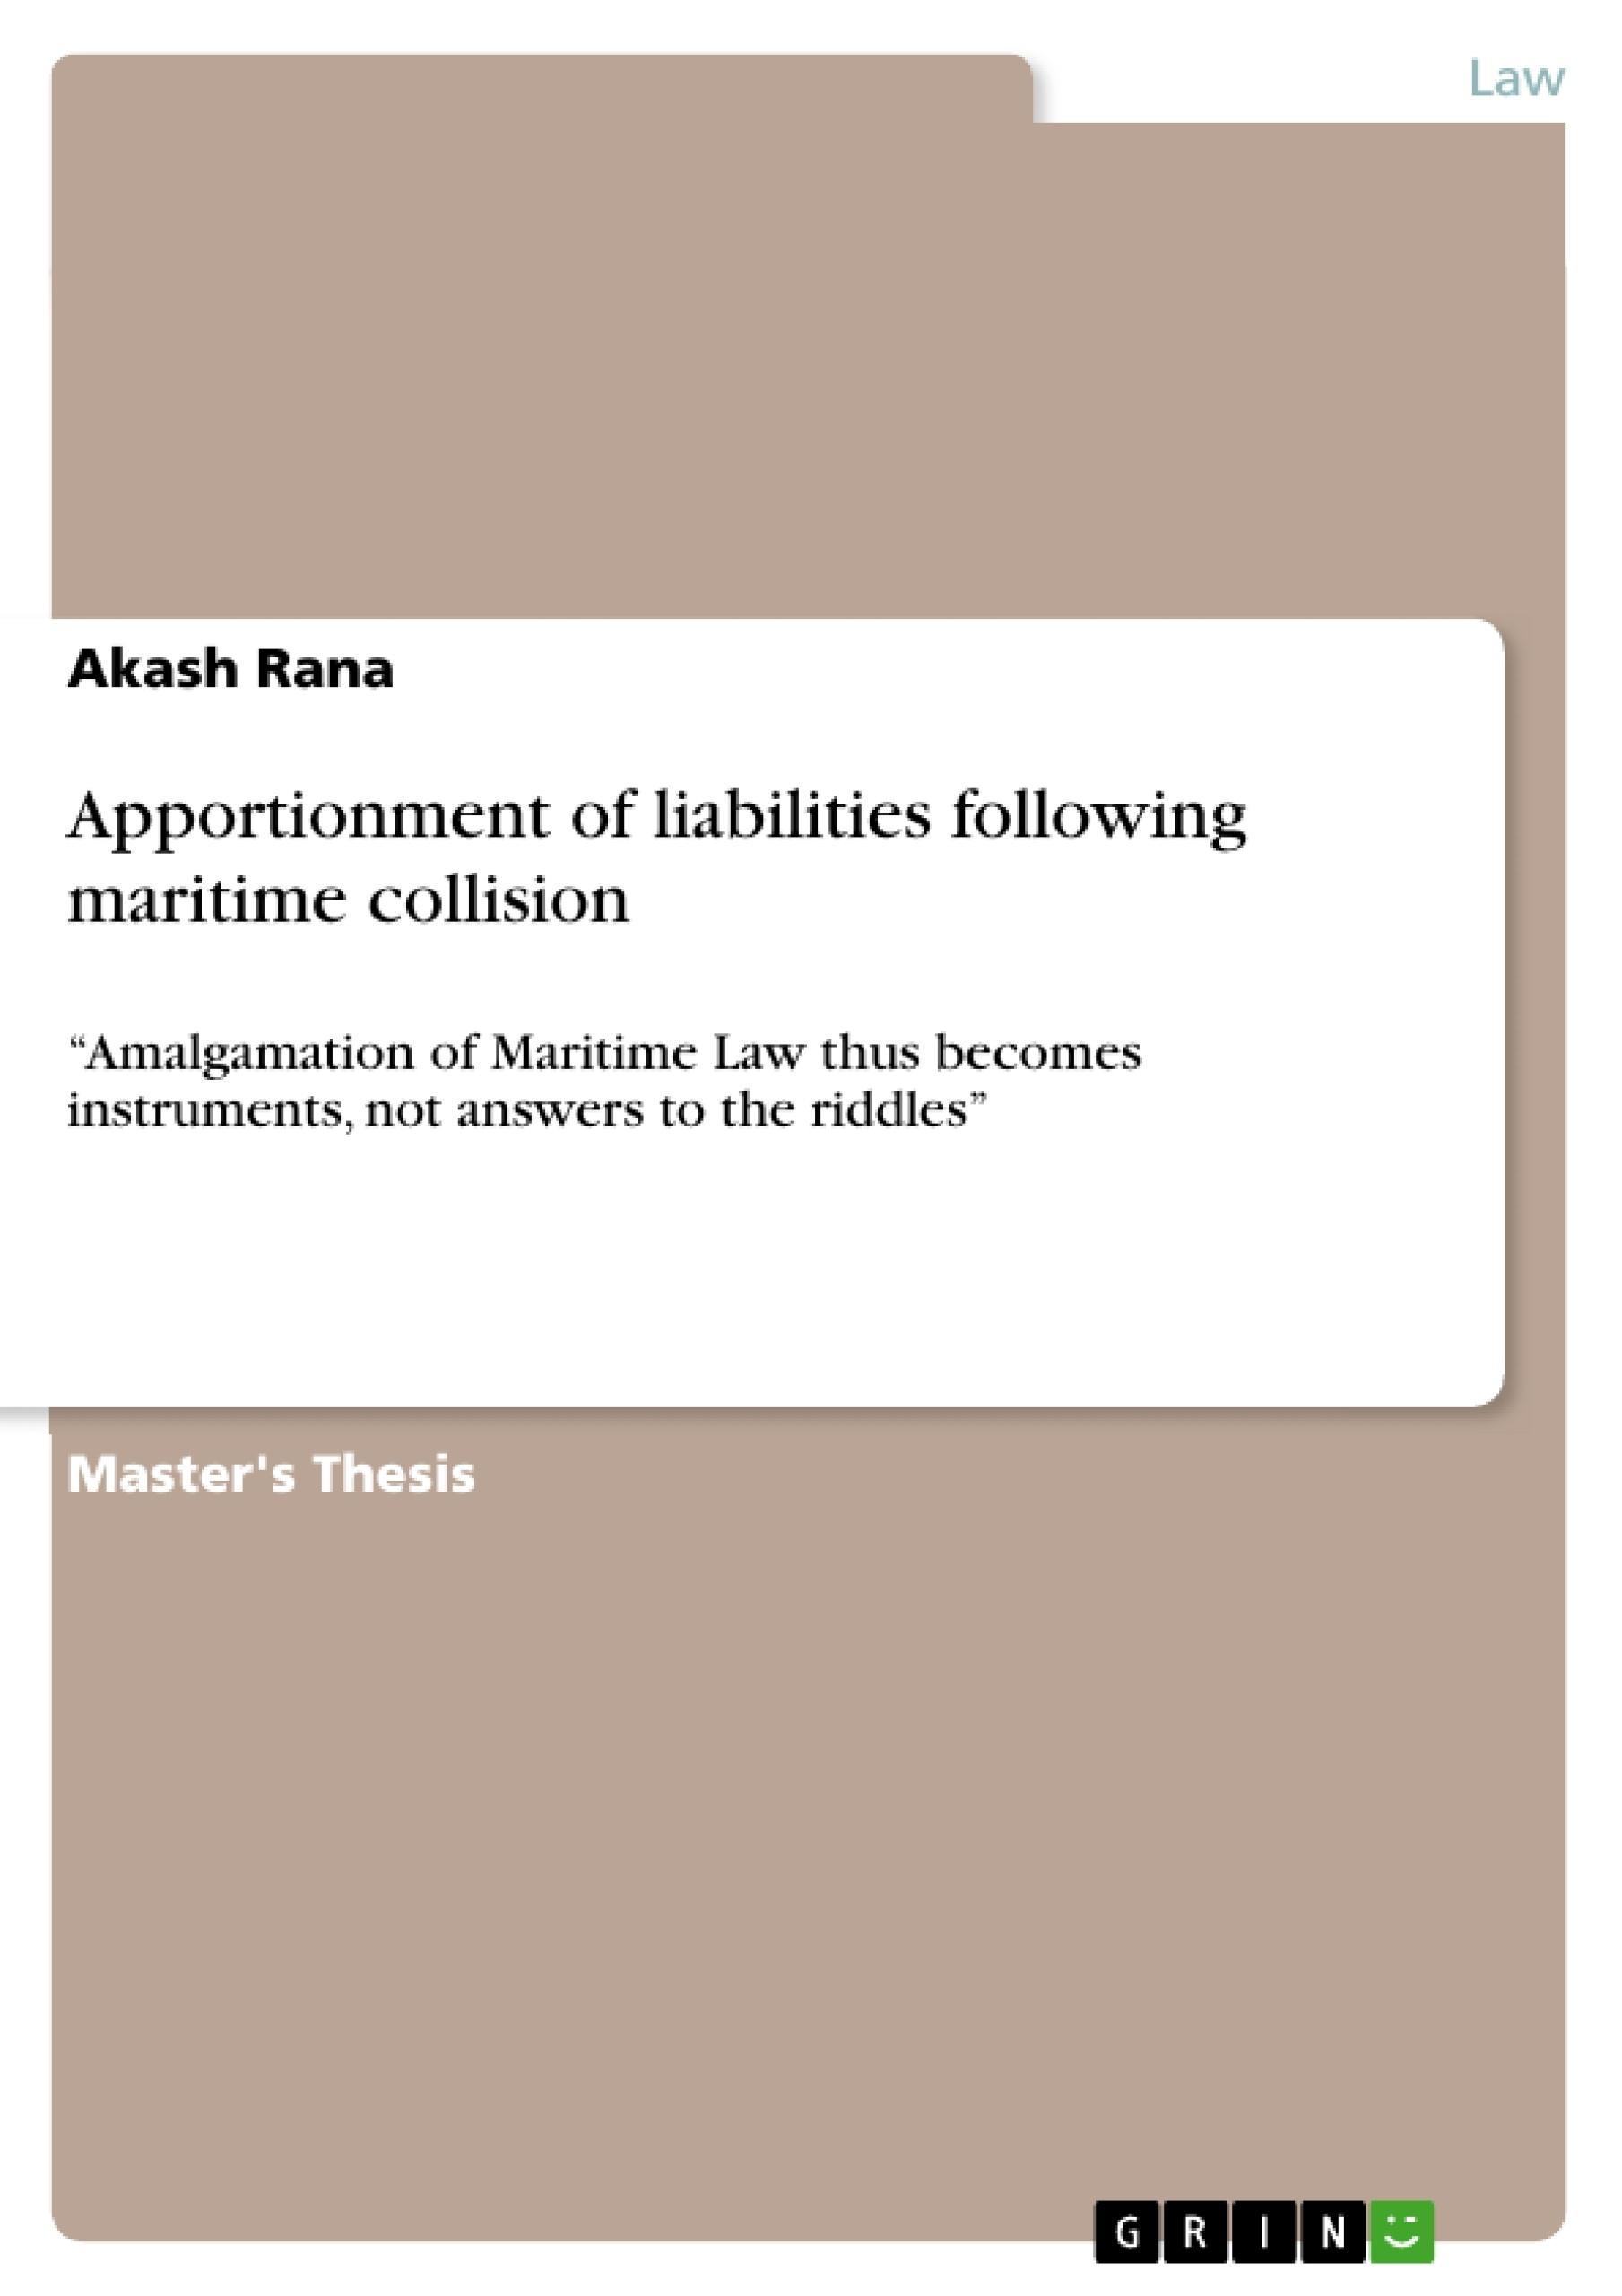 Title: Apportionment of liabilities following maritime collision